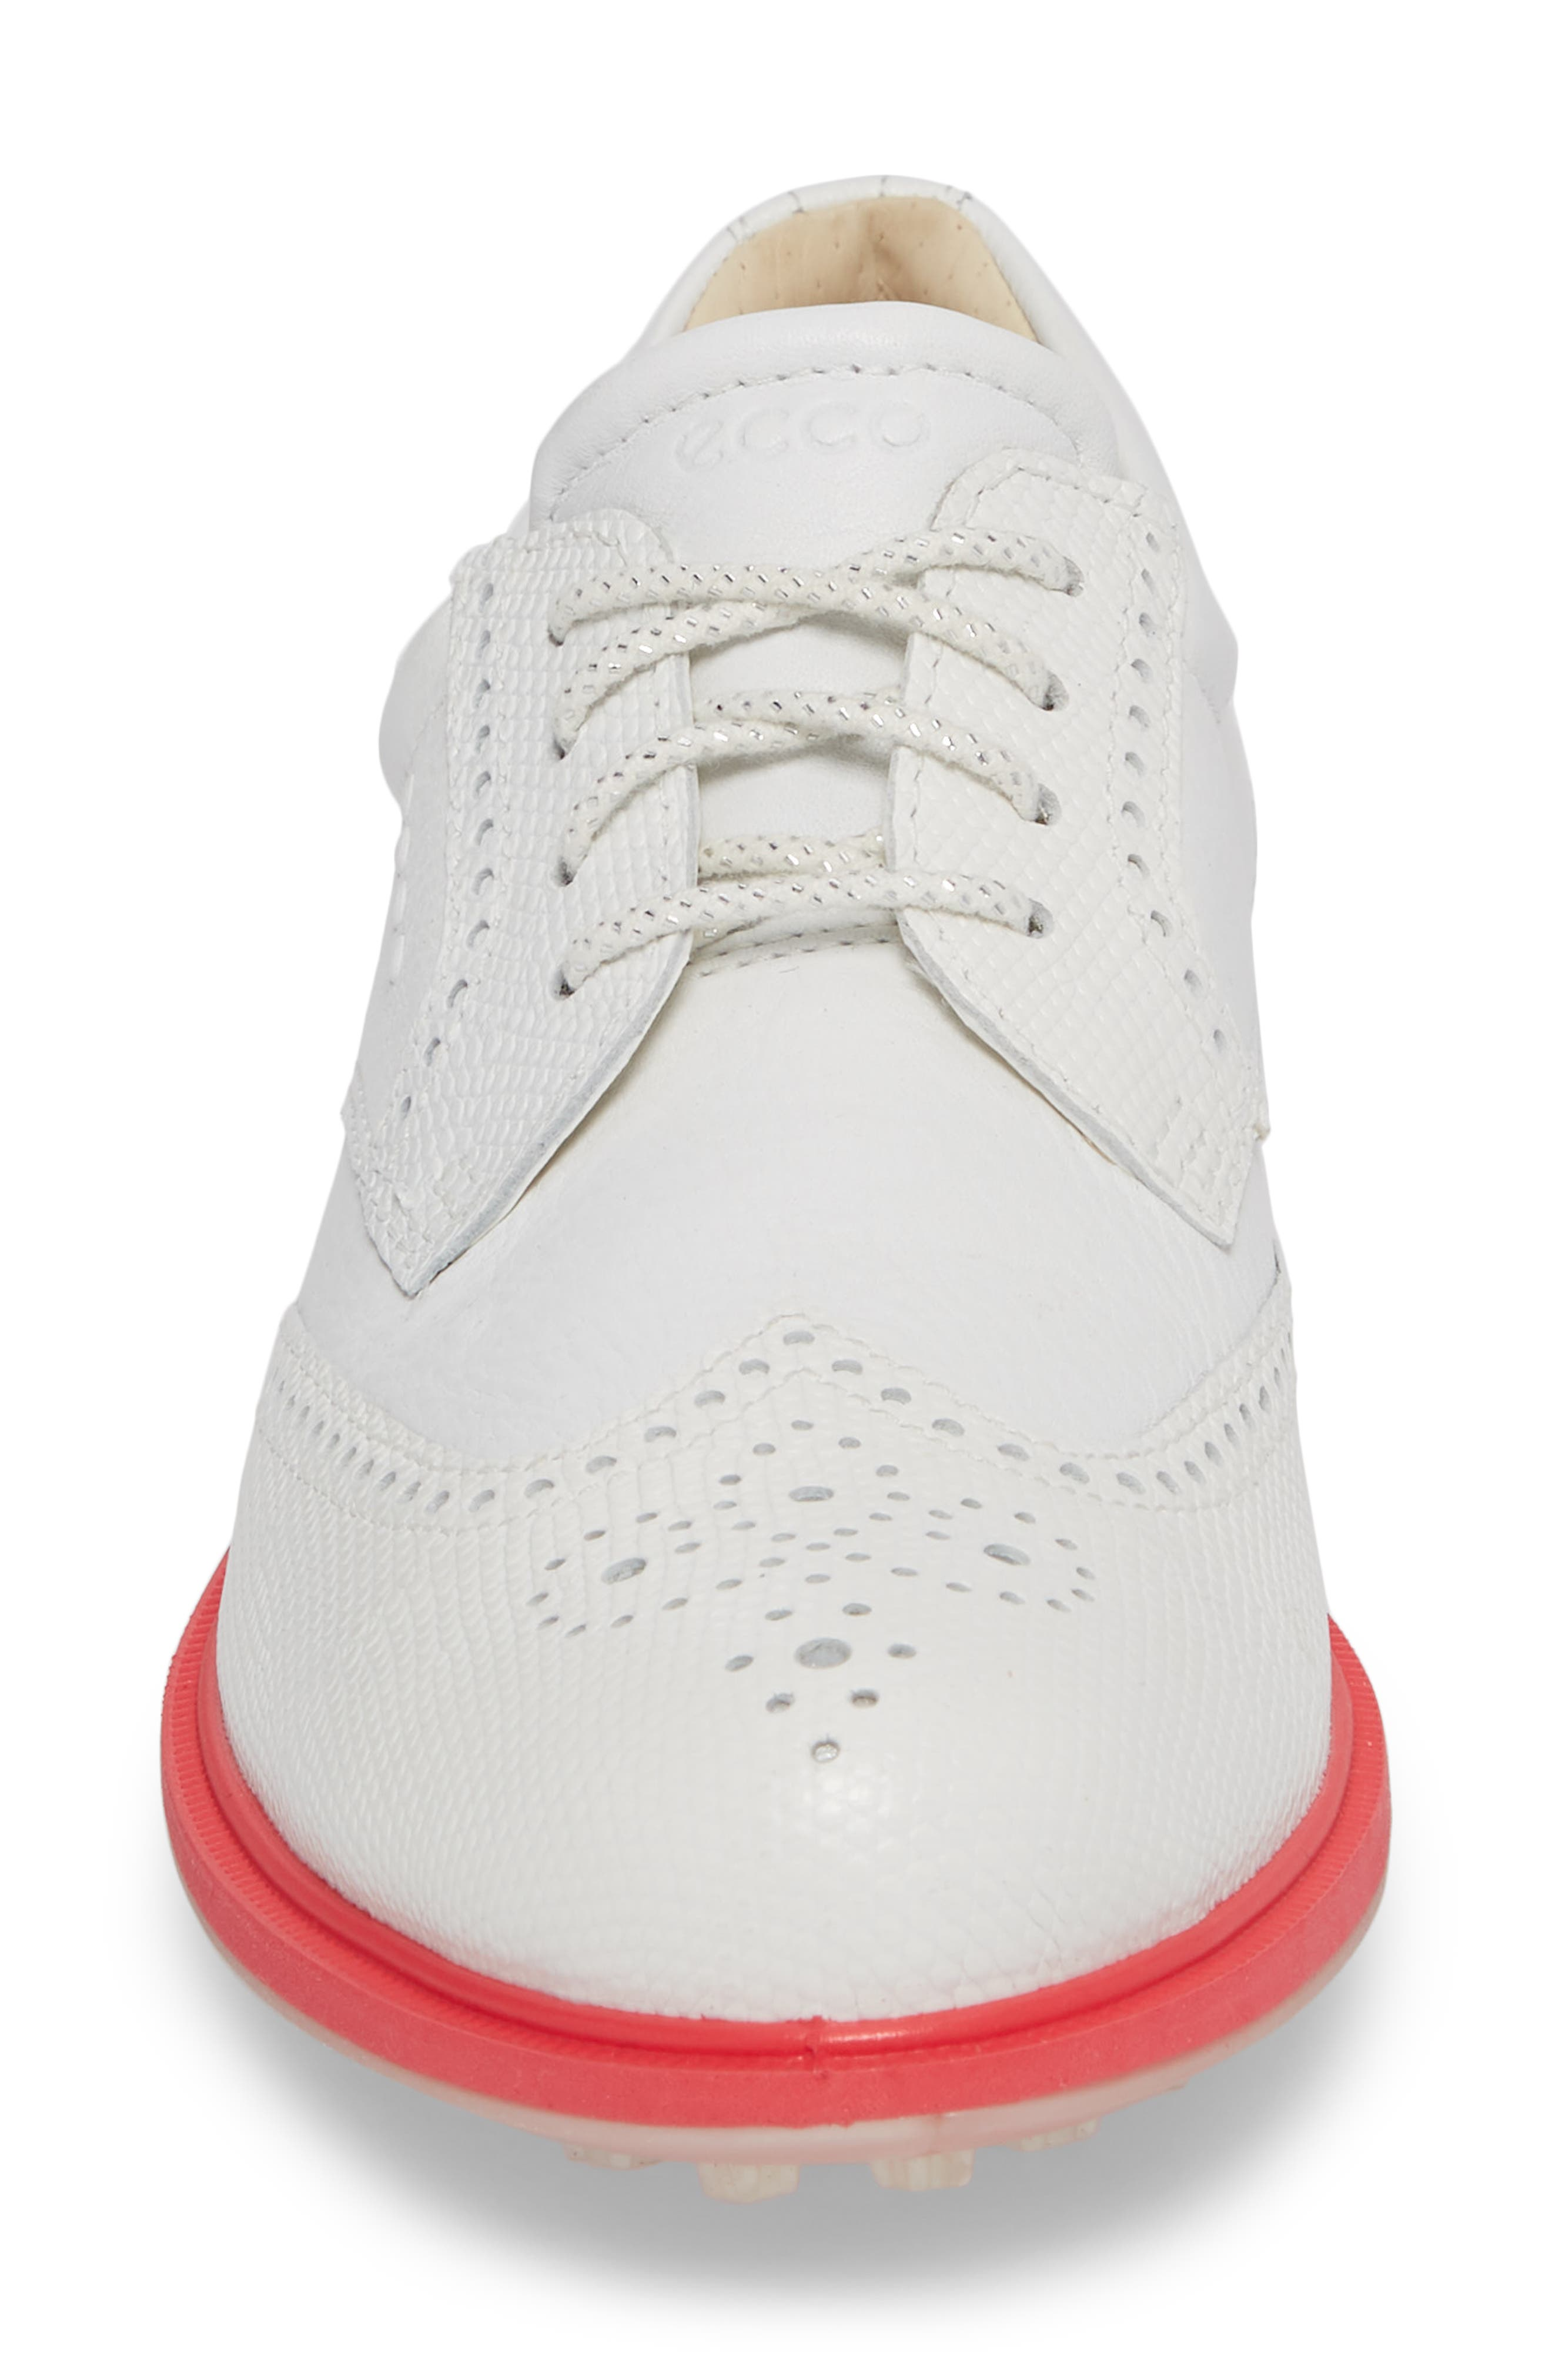 'Tour' Hybrid Wingtip Golf Shoe,                             Alternate thumbnail 4, color,                             WHITE LEATHER/ RED